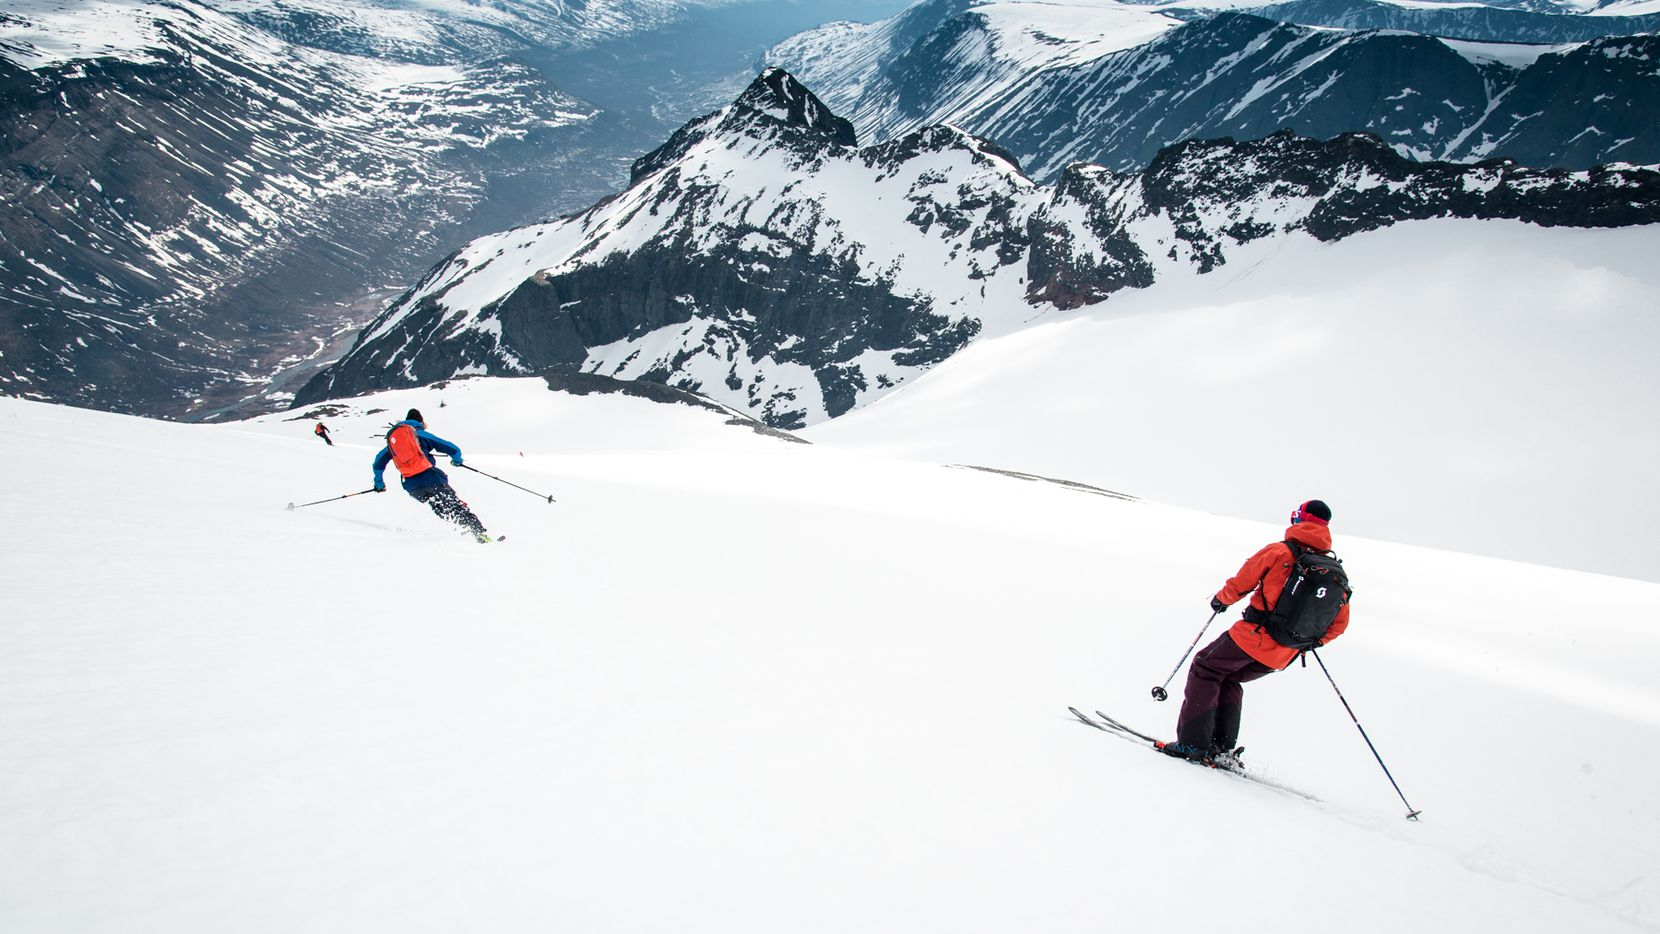 Niehku Mountain Villa, on the border of Norway and Sweden just north of the Arctic Circle, offers a mix of high-altitude, wide-open powder runs and adrenaline-pumping steeps that can't be found anywhere else.